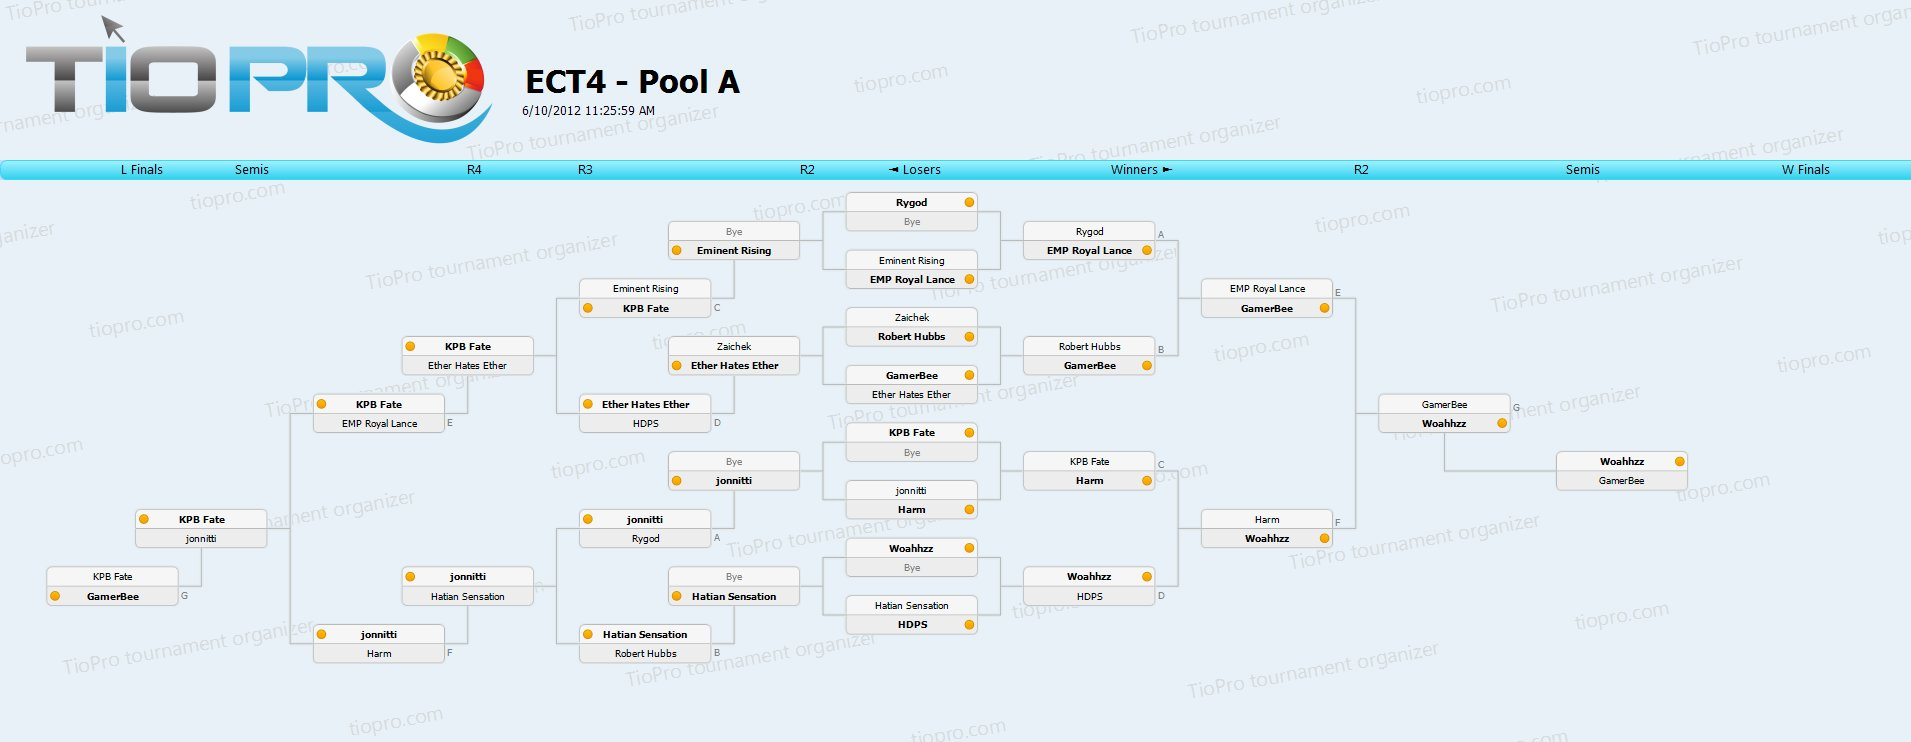 East Coast Throwdown 4 - Pool A